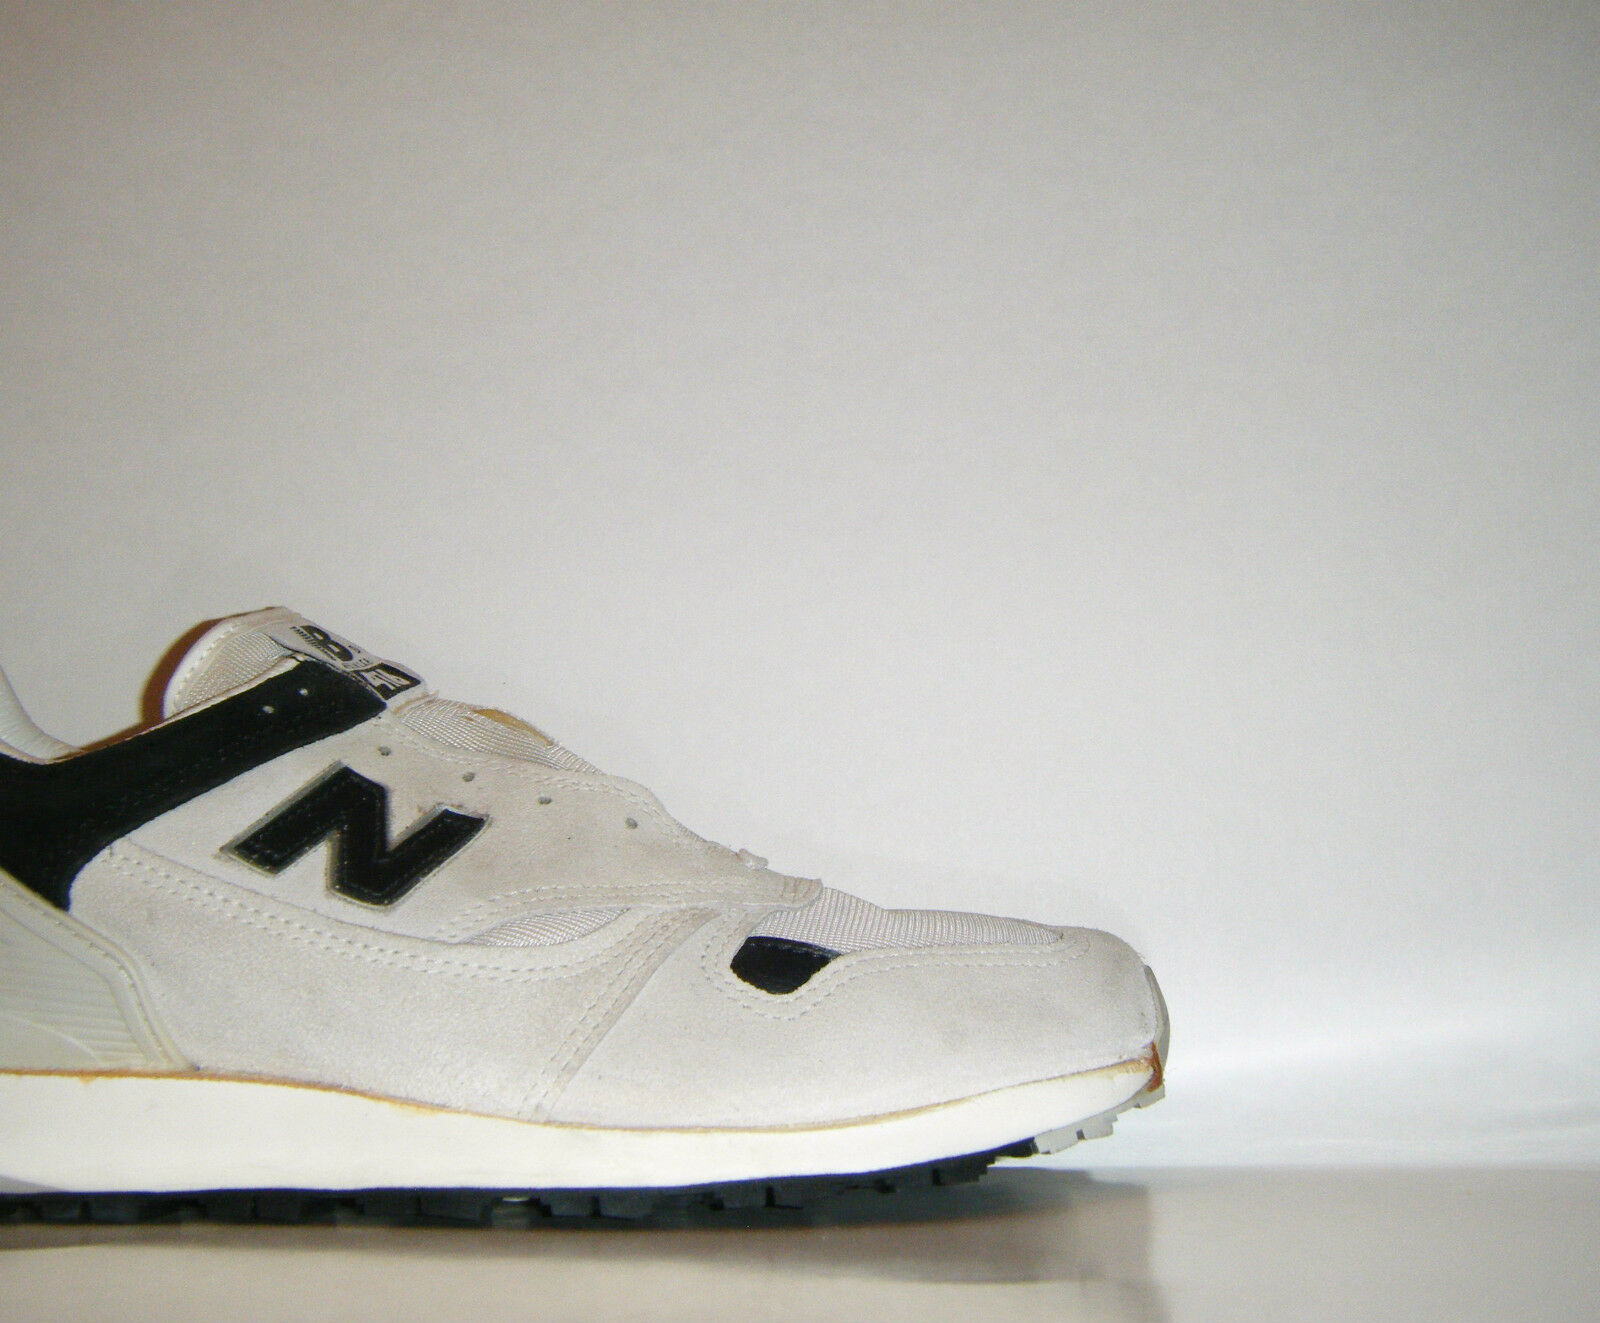 Ds og VTG 80's New Balance 476 Usa Edición Limitada Talla. 11 Running Trainer 1500